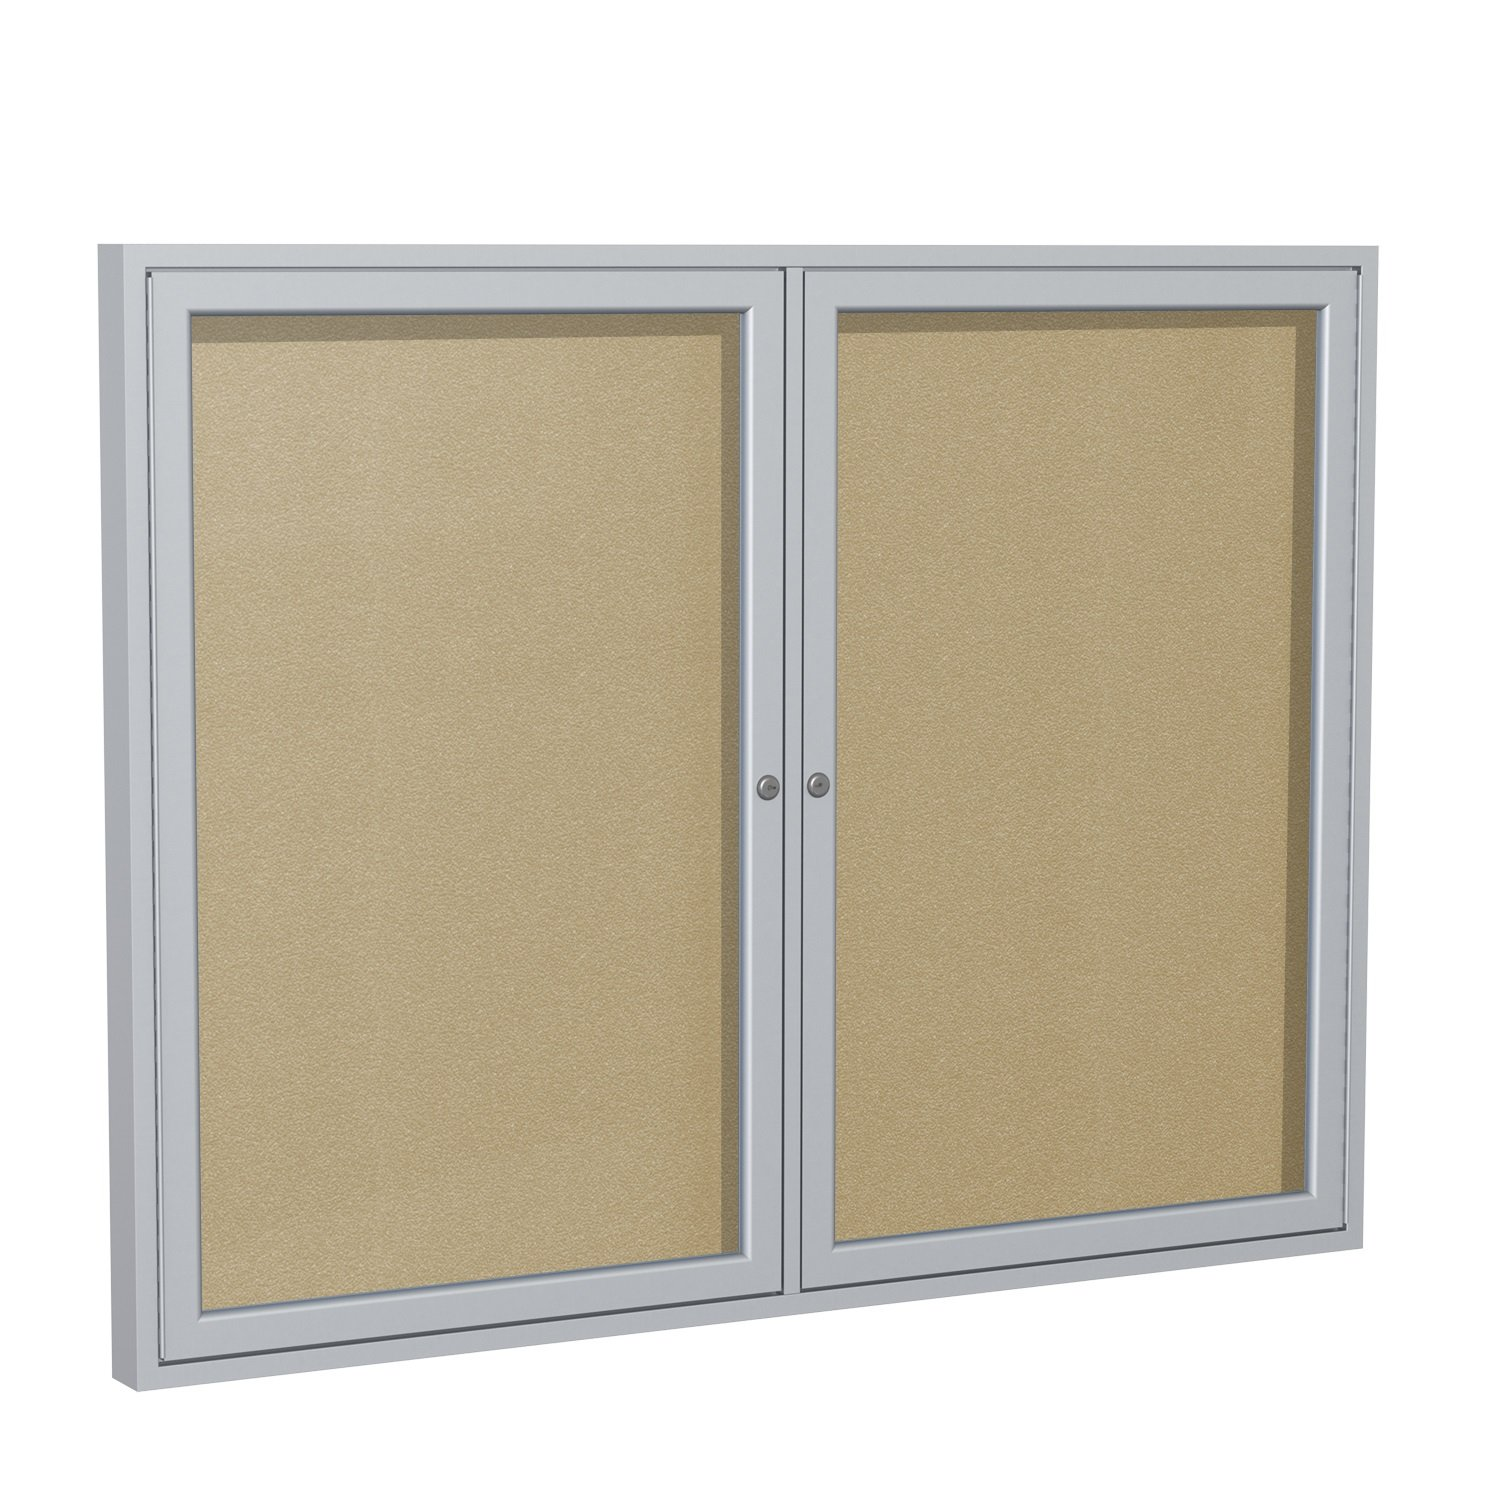 Ghent 3' x 4' 2-Door Outdoor Enclosed Vinyl Bulletin Board, Shatter Resistant, with Lock, Satin Aluminum Frame - Caramel (PA234VX-181), Made in the USA PA23648VX-181